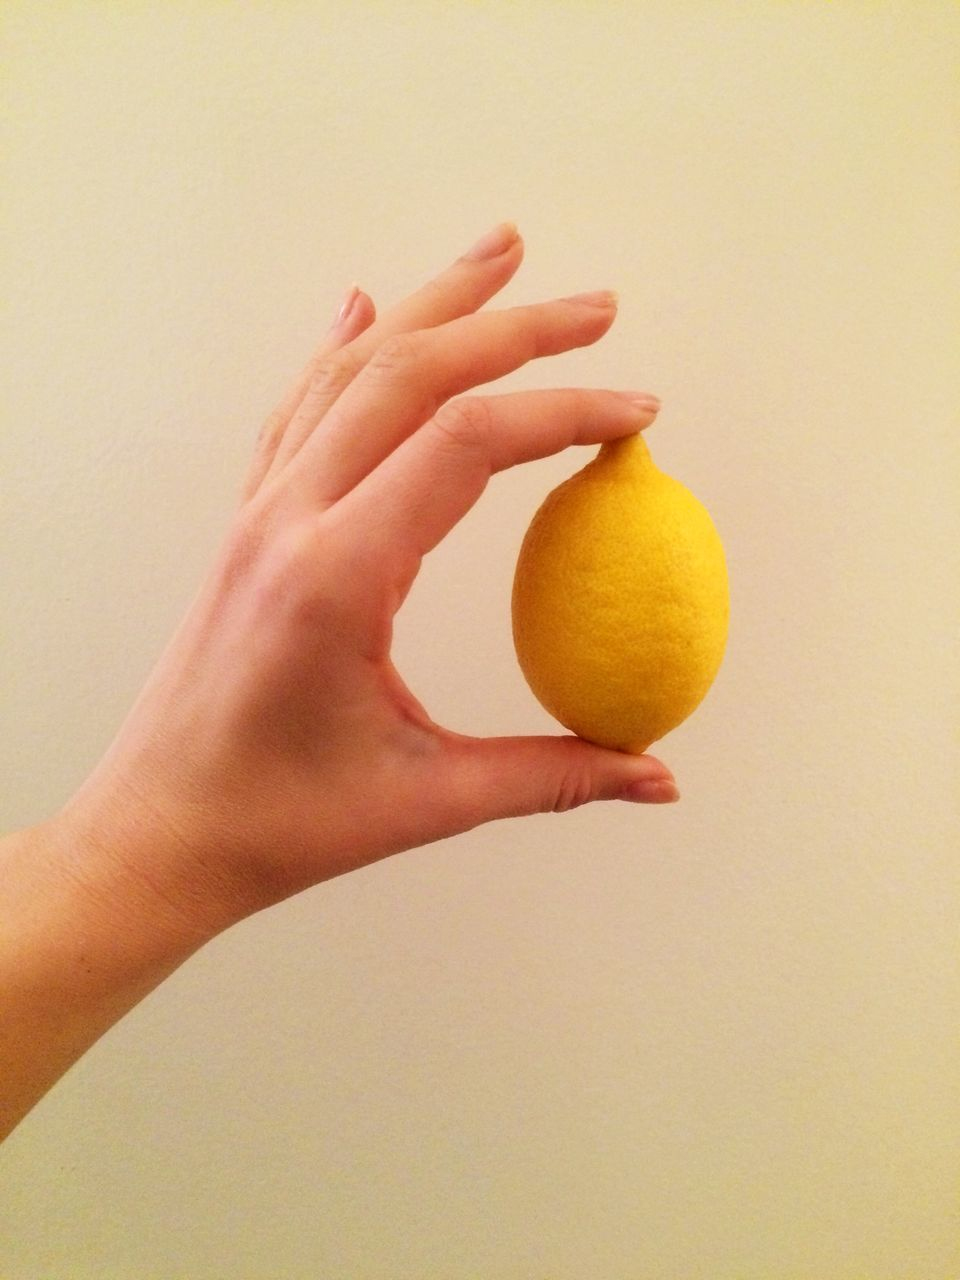 Cropped Hand Of Woman Holding Lemon Against Beige Background